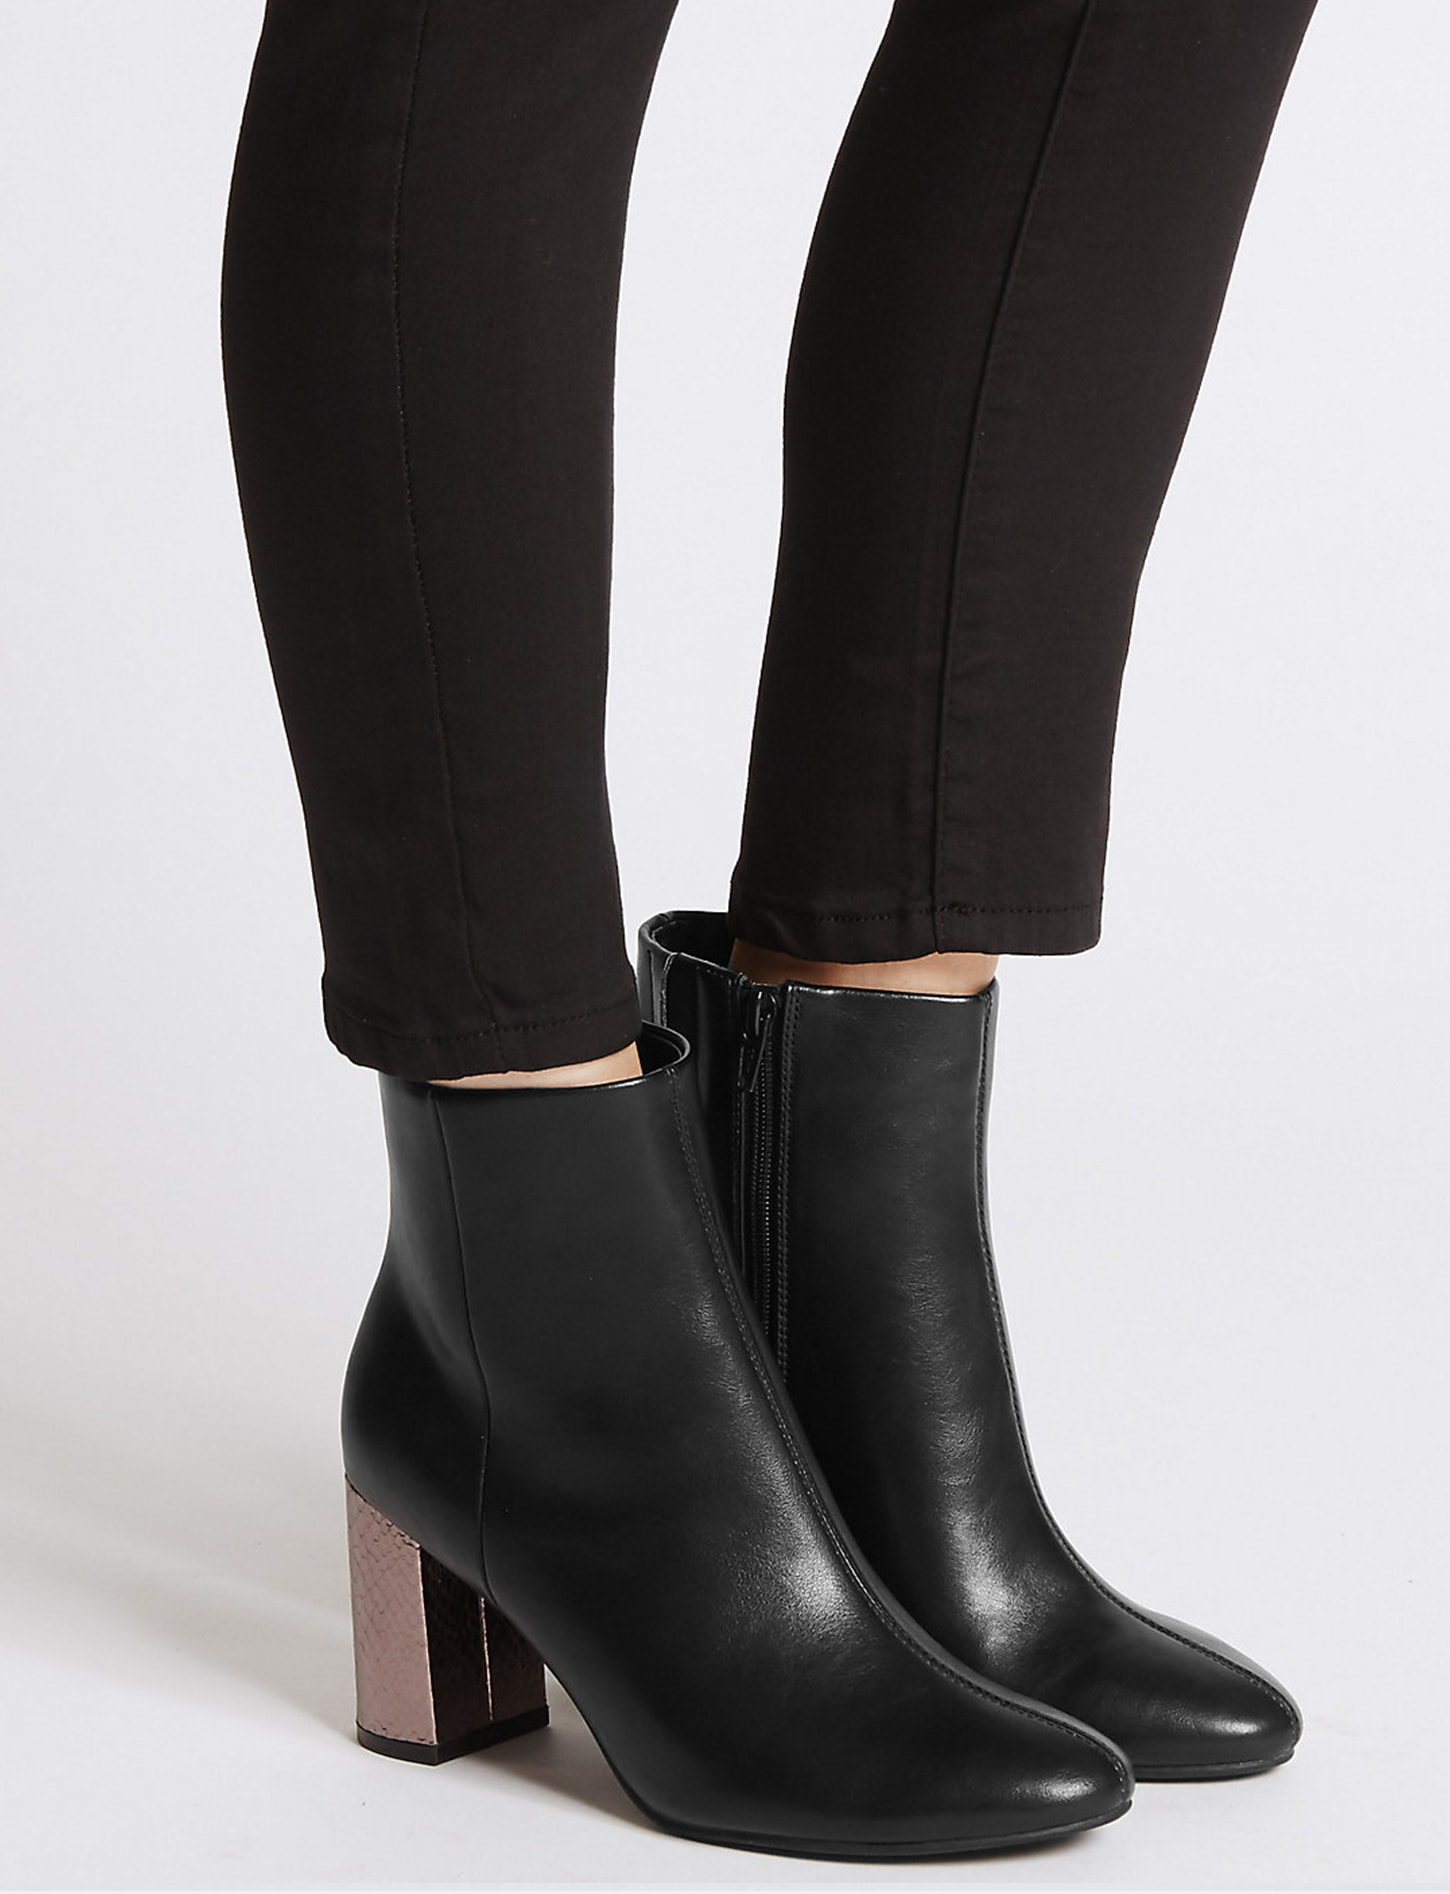 M&S block heel ankle boots